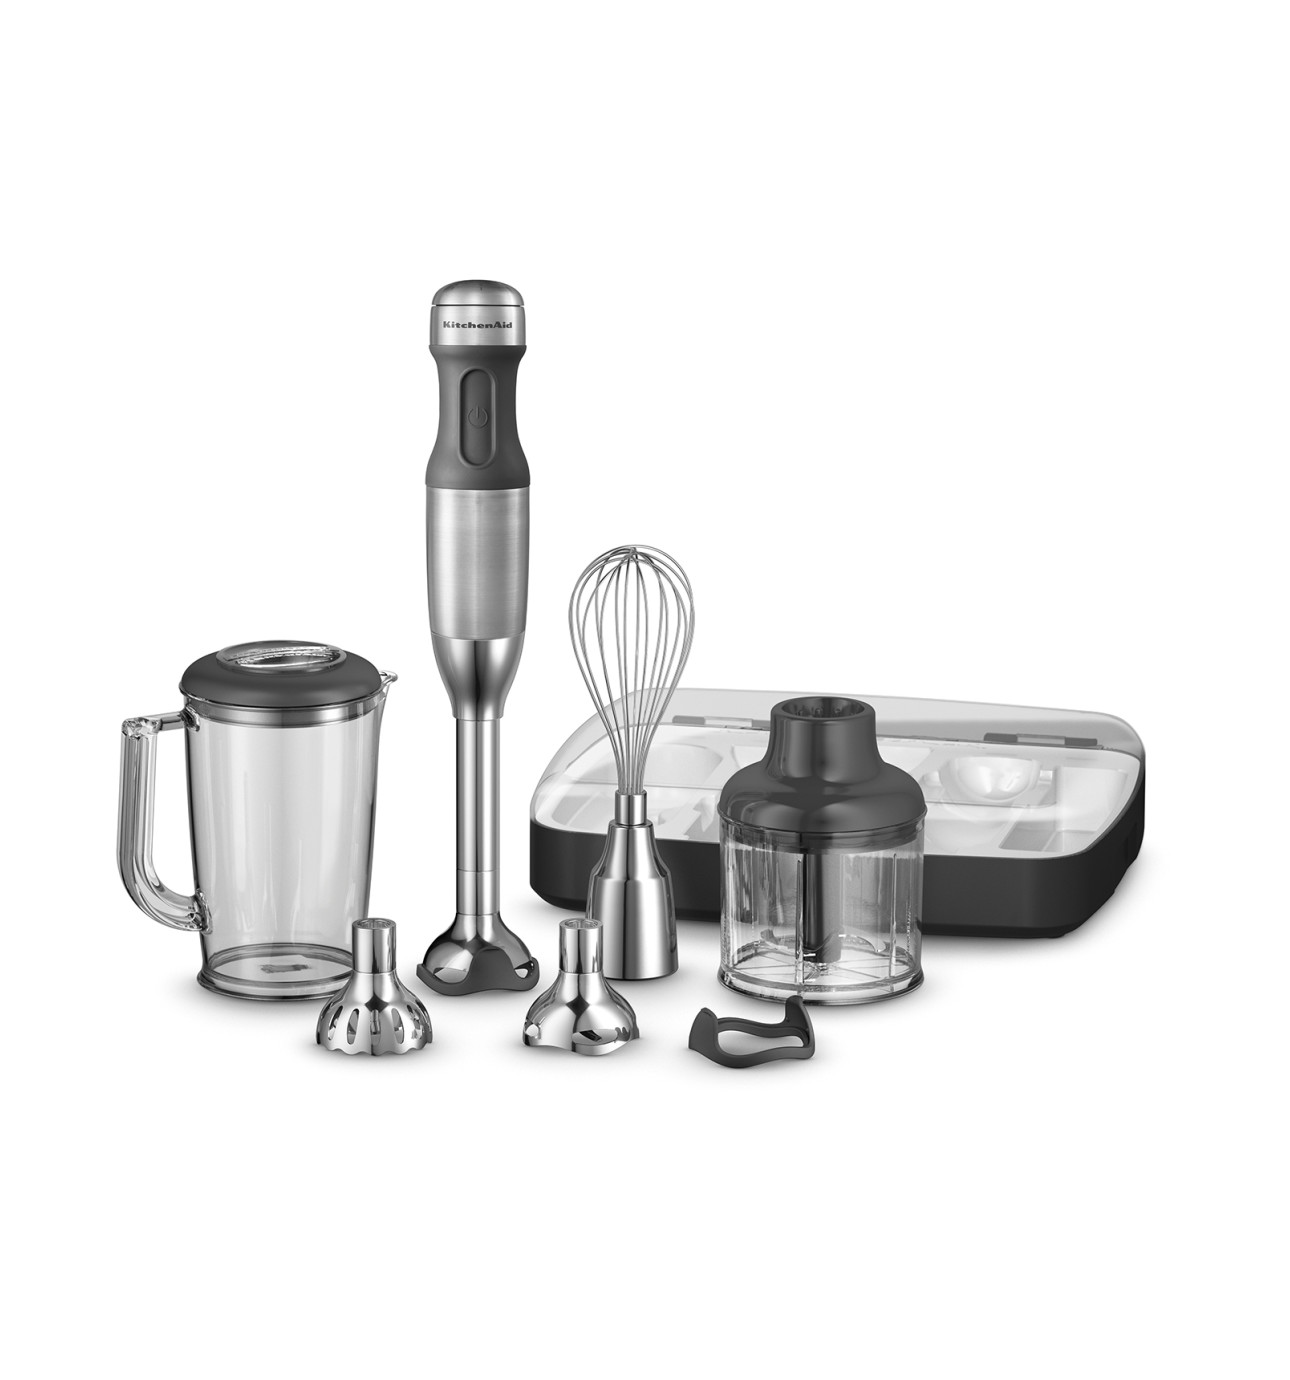 Uncategorized David Jones Kitchen Appliances food preparation david jones khb2569 artisan deluxe hand blender stainless steel